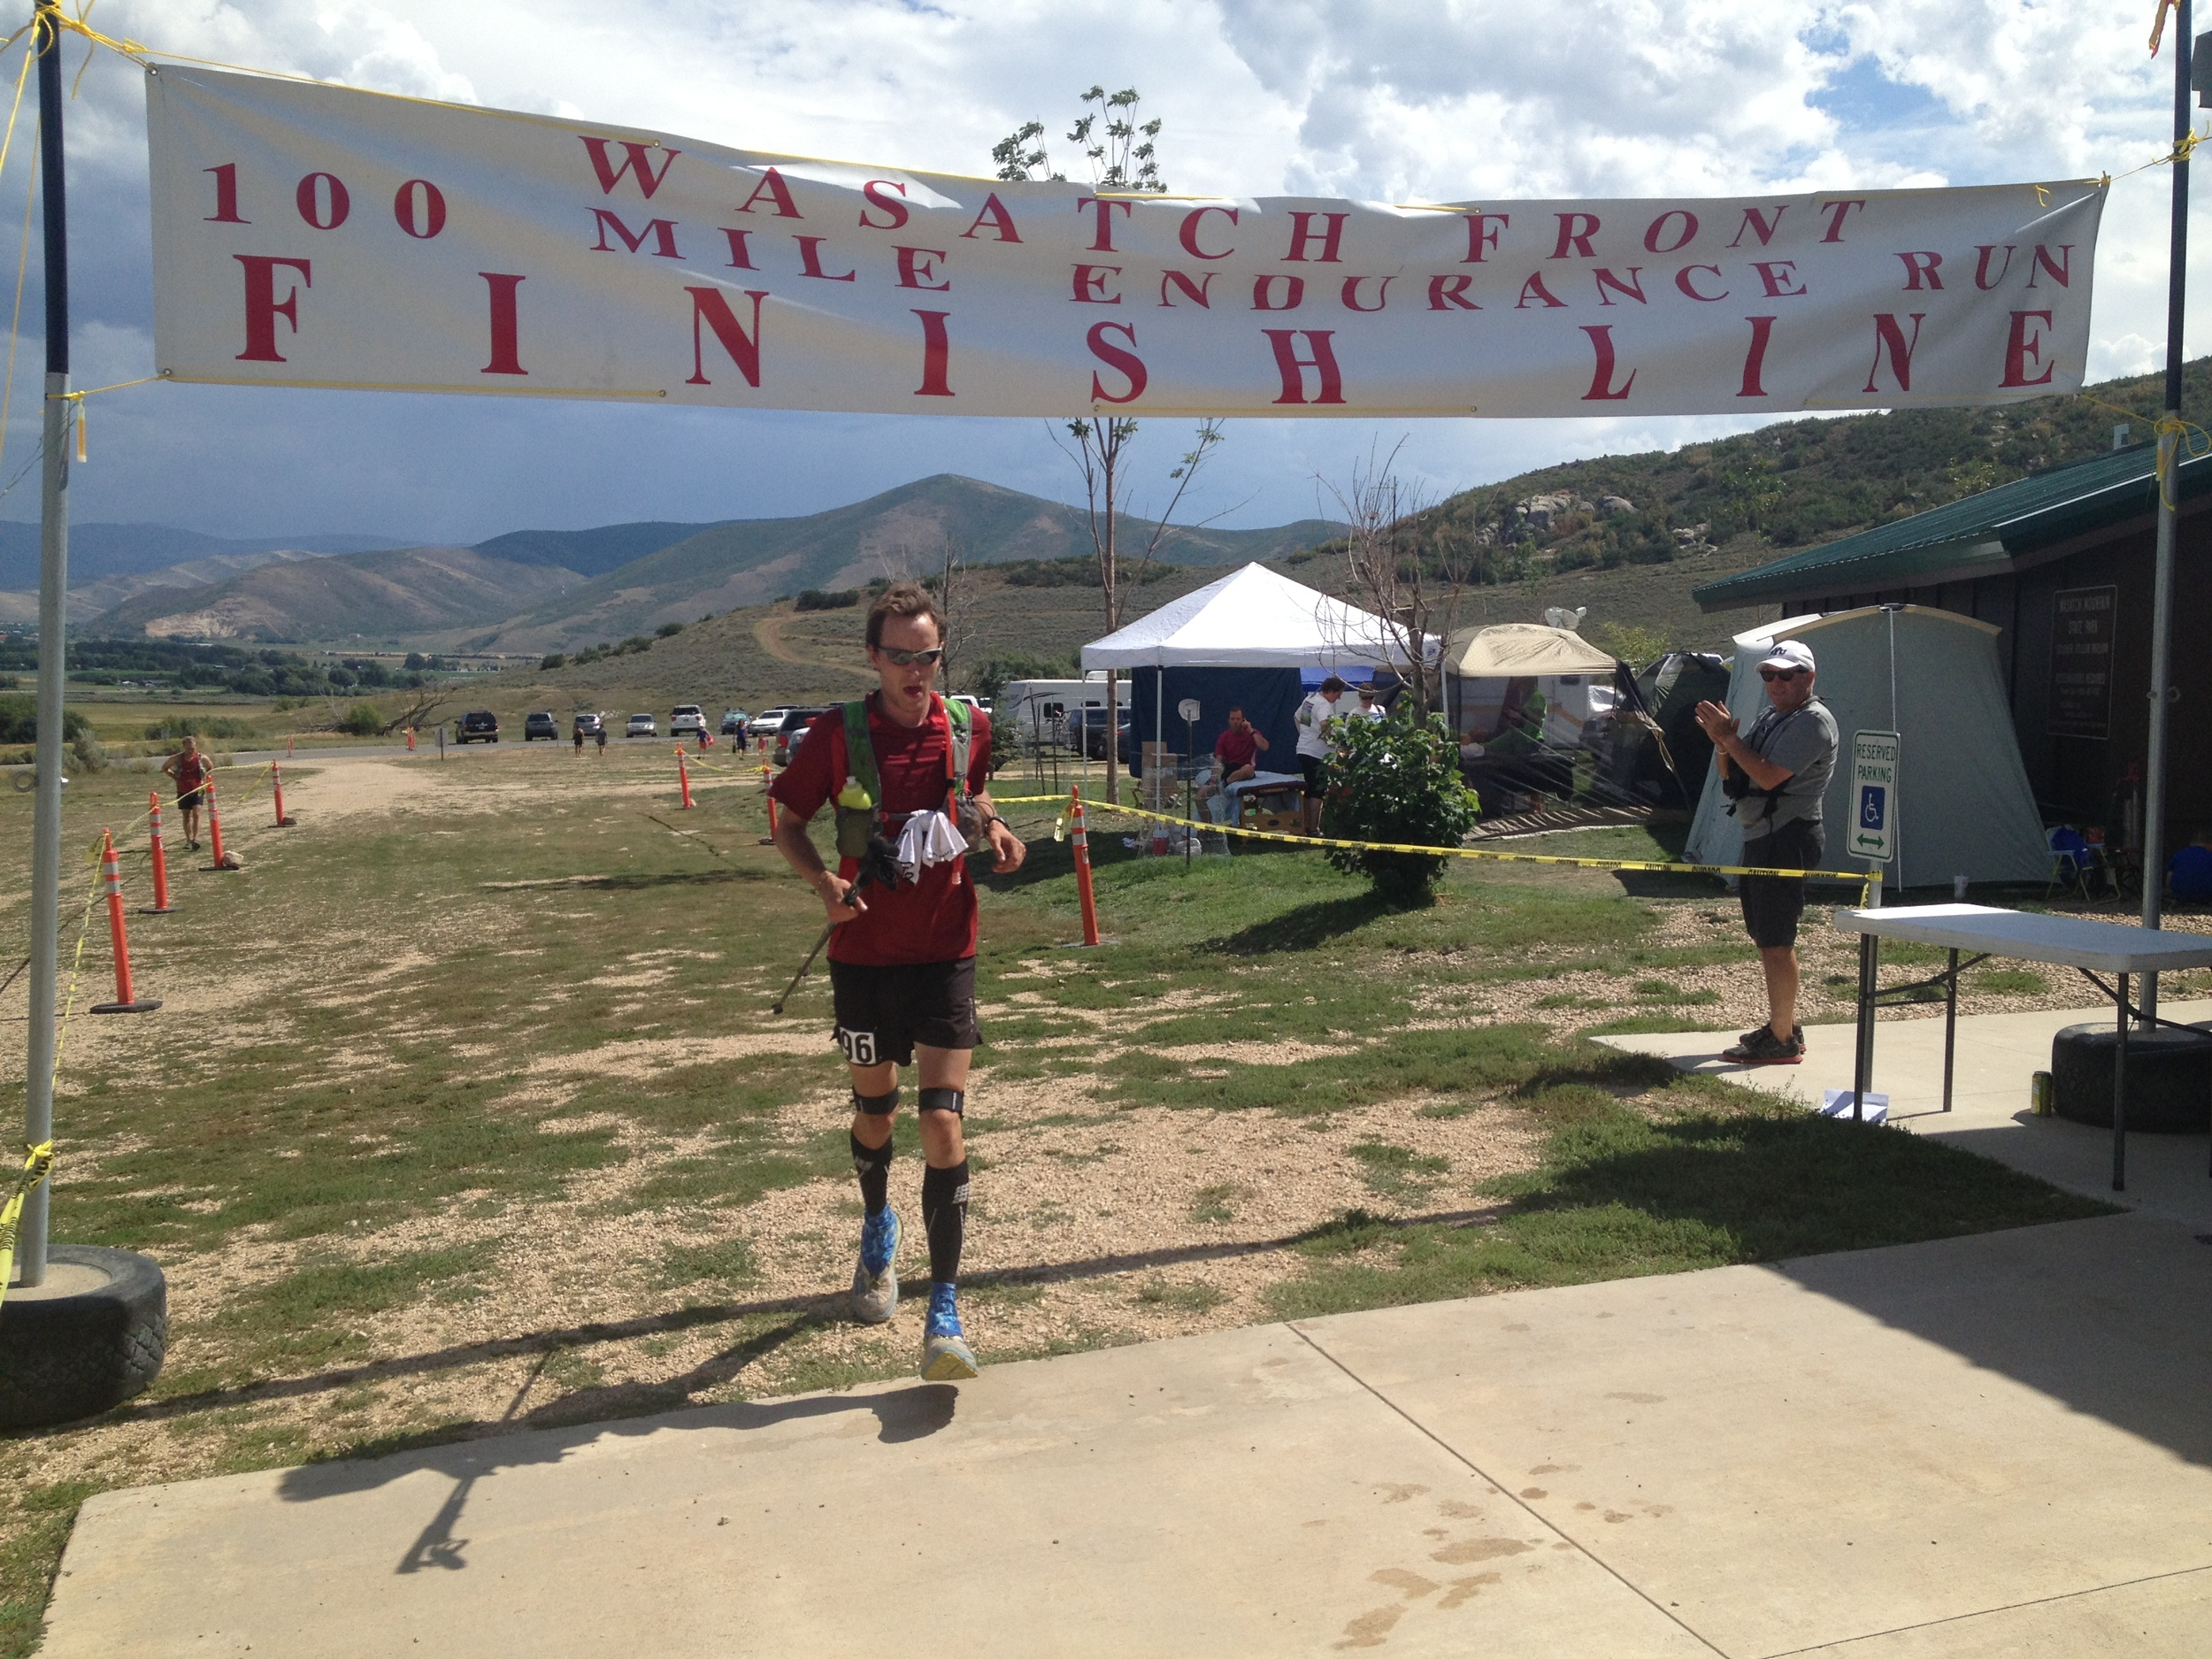 Finish of the Wasatch 100 2013 Photo Credit: Cameron Bell